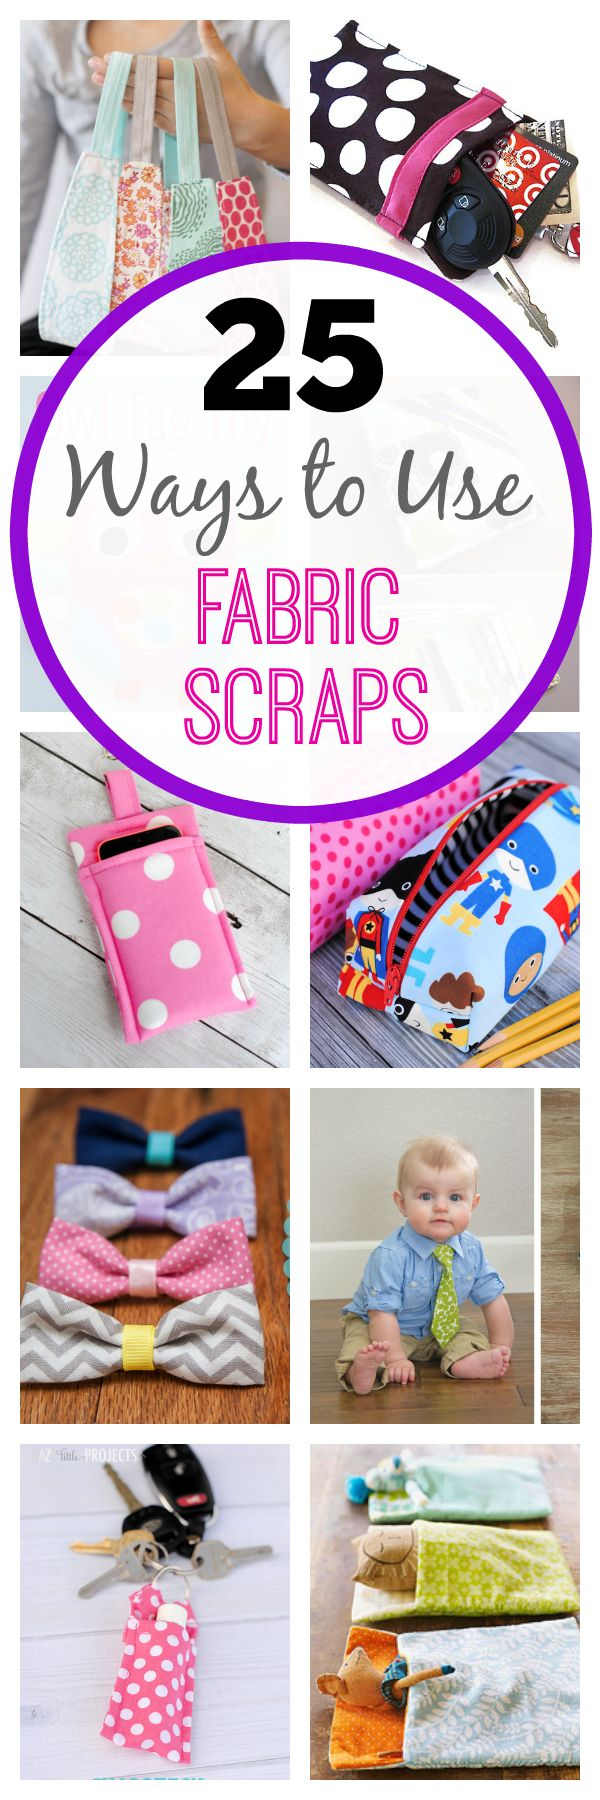 Tweet Pin It If you're like me you probably have a lot of little fabric scraps of various sizes left over from previous sewing projects. They pile up in your closet or craft room and you love them but you aren't quite sure what to do with them. I've got a few project ideas for … [Read More…]